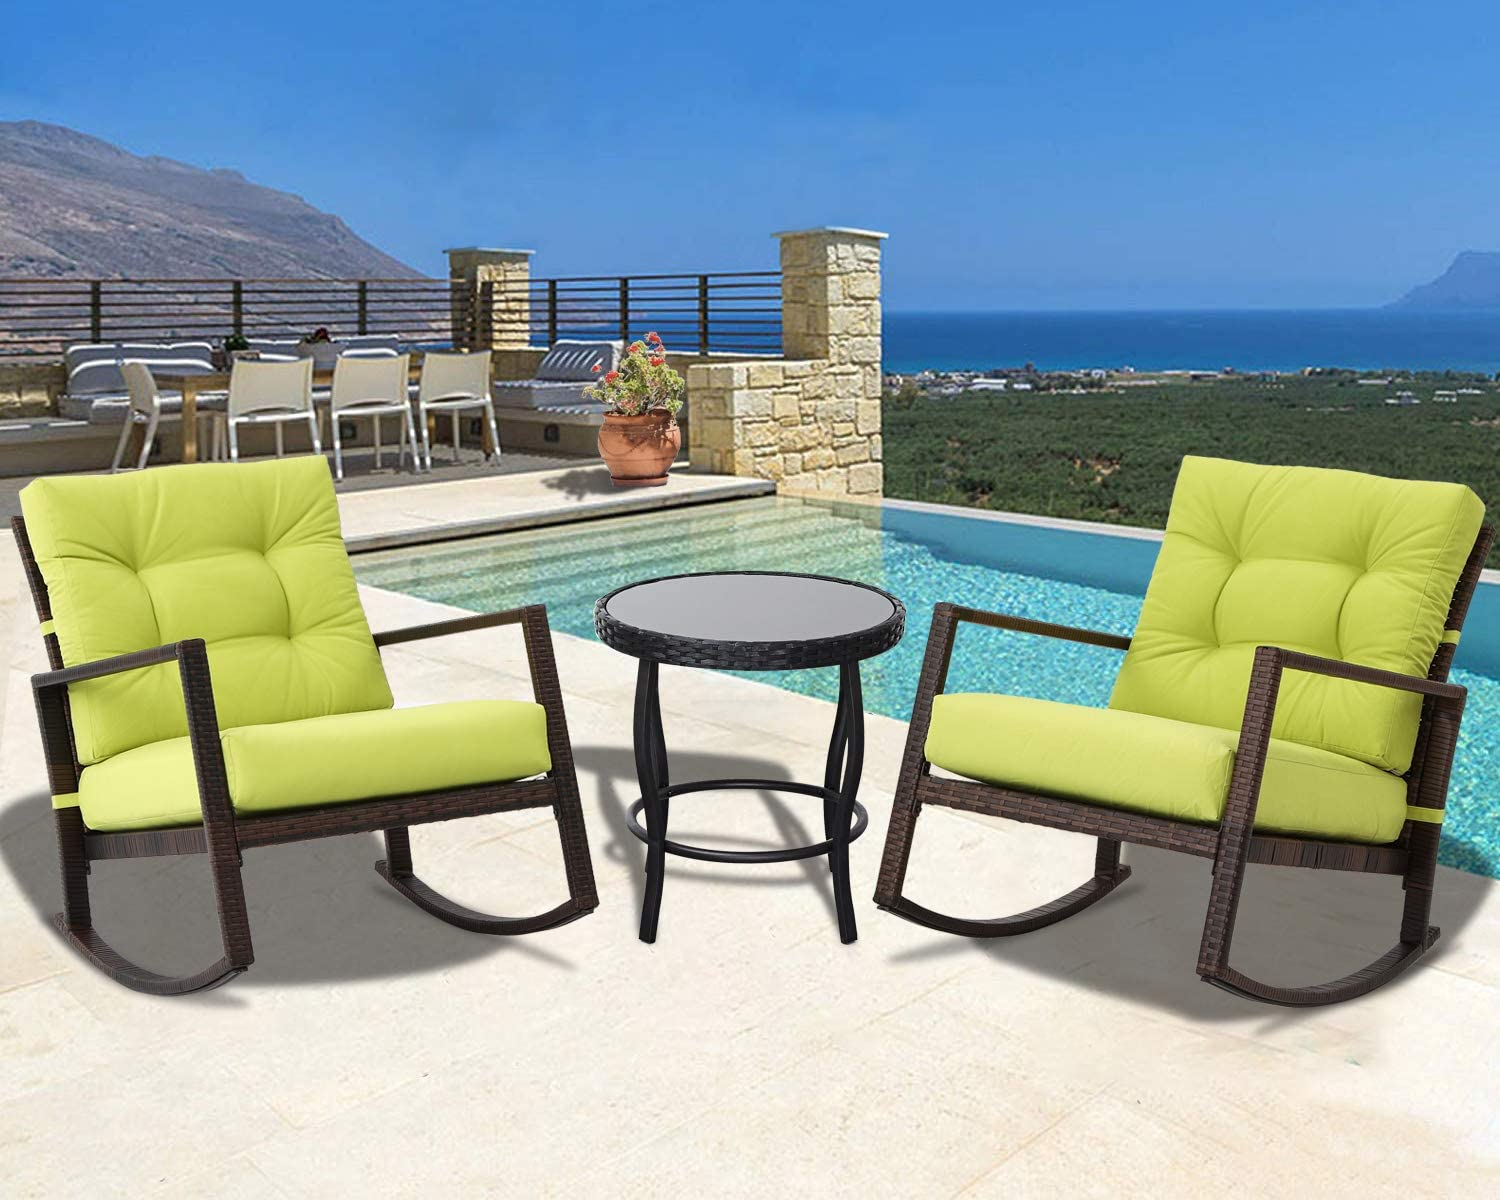 Oakmont Patio Furniture 3-Piece Rocking Wicker Bistro Set, Smooth Gliding Rocker Armchair with Glass Coffee Table Green Cushions